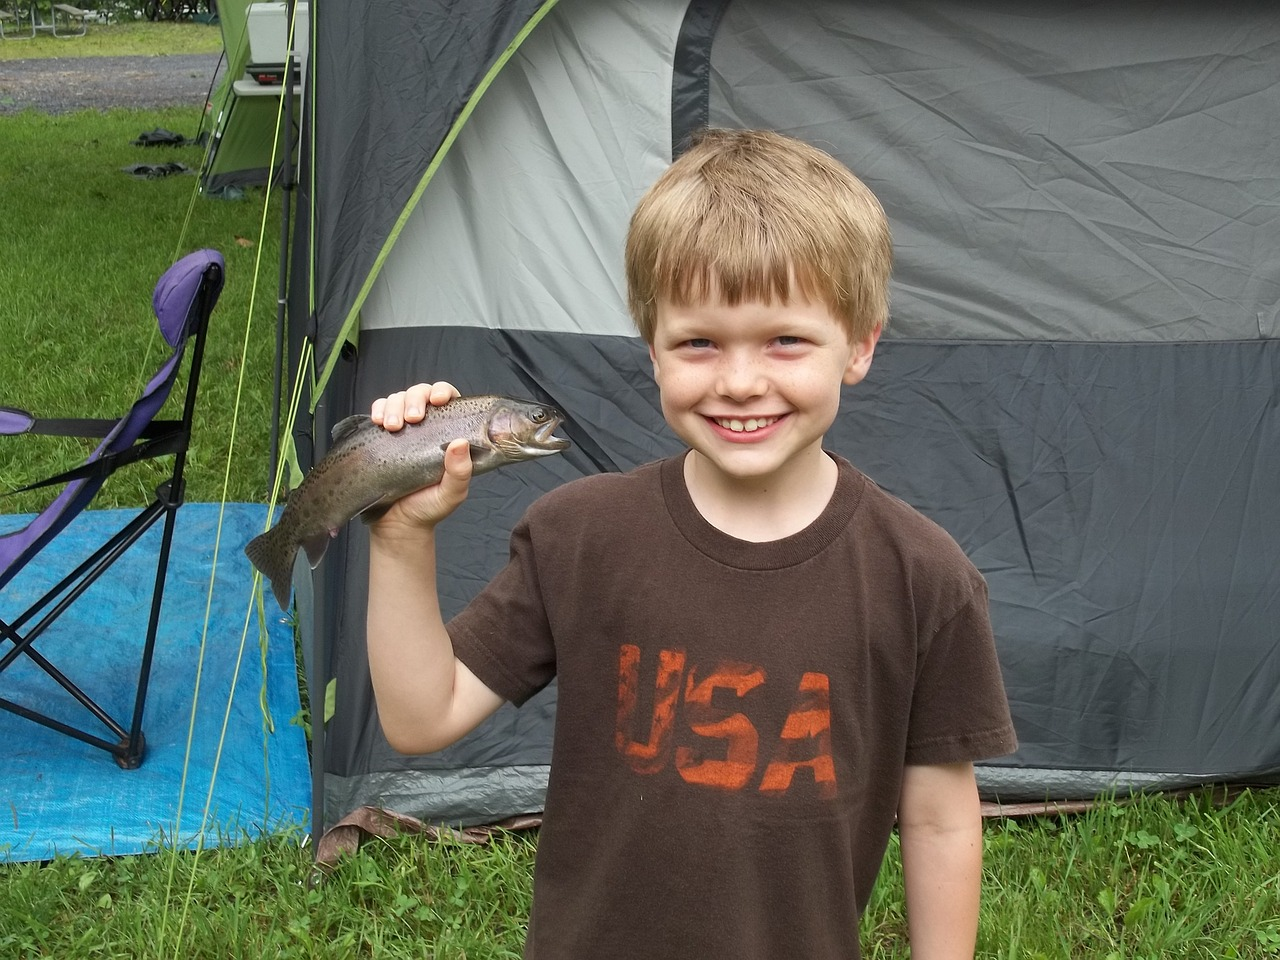 Little boy holding a fish